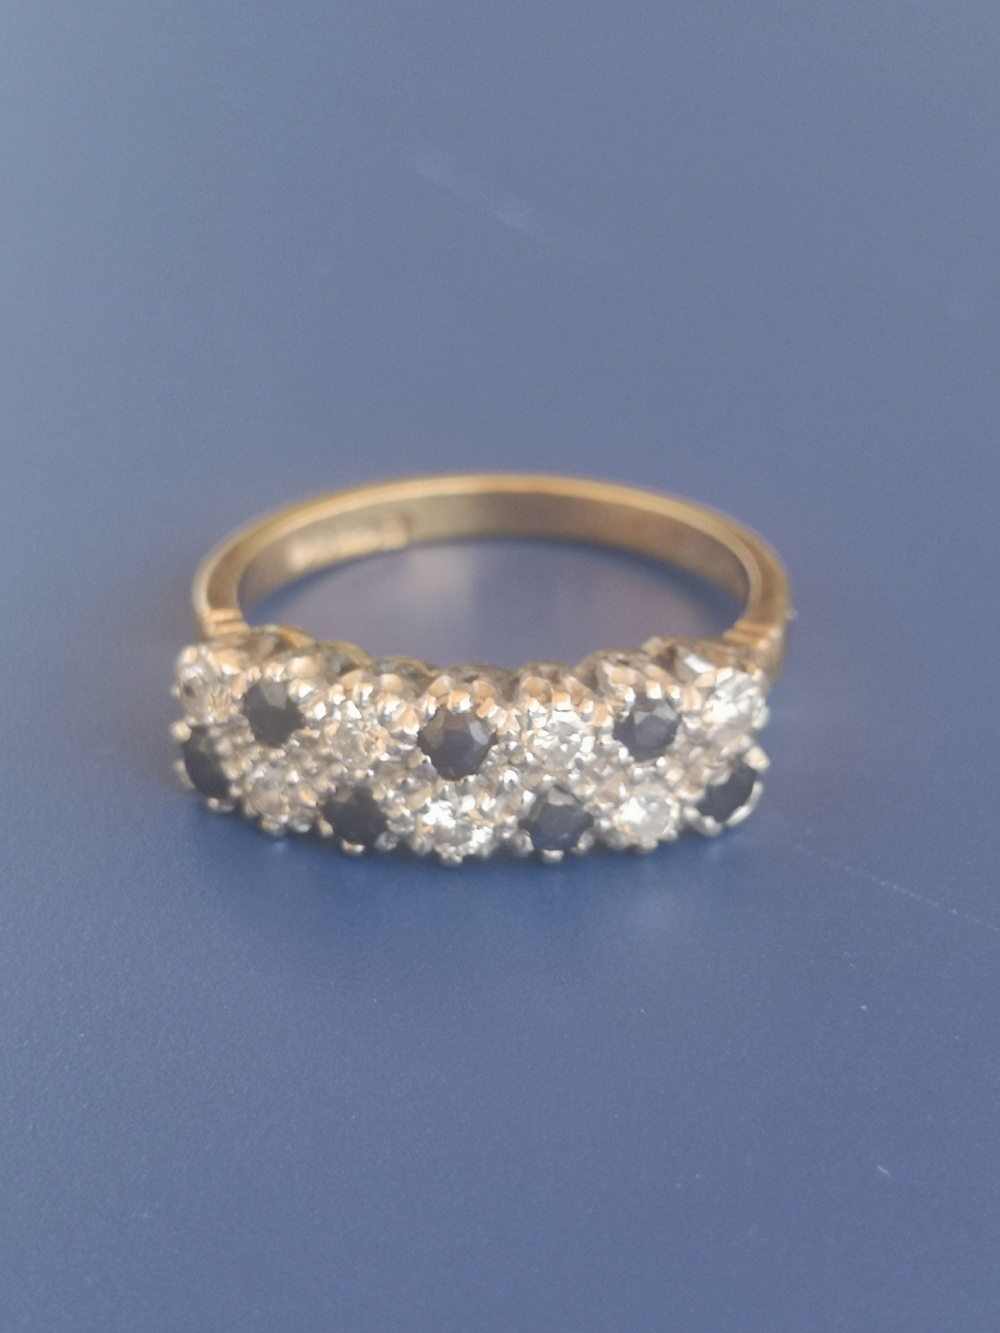 A sapphire & diamond ring set as two rows in 18ct gold. Finger size M/N.